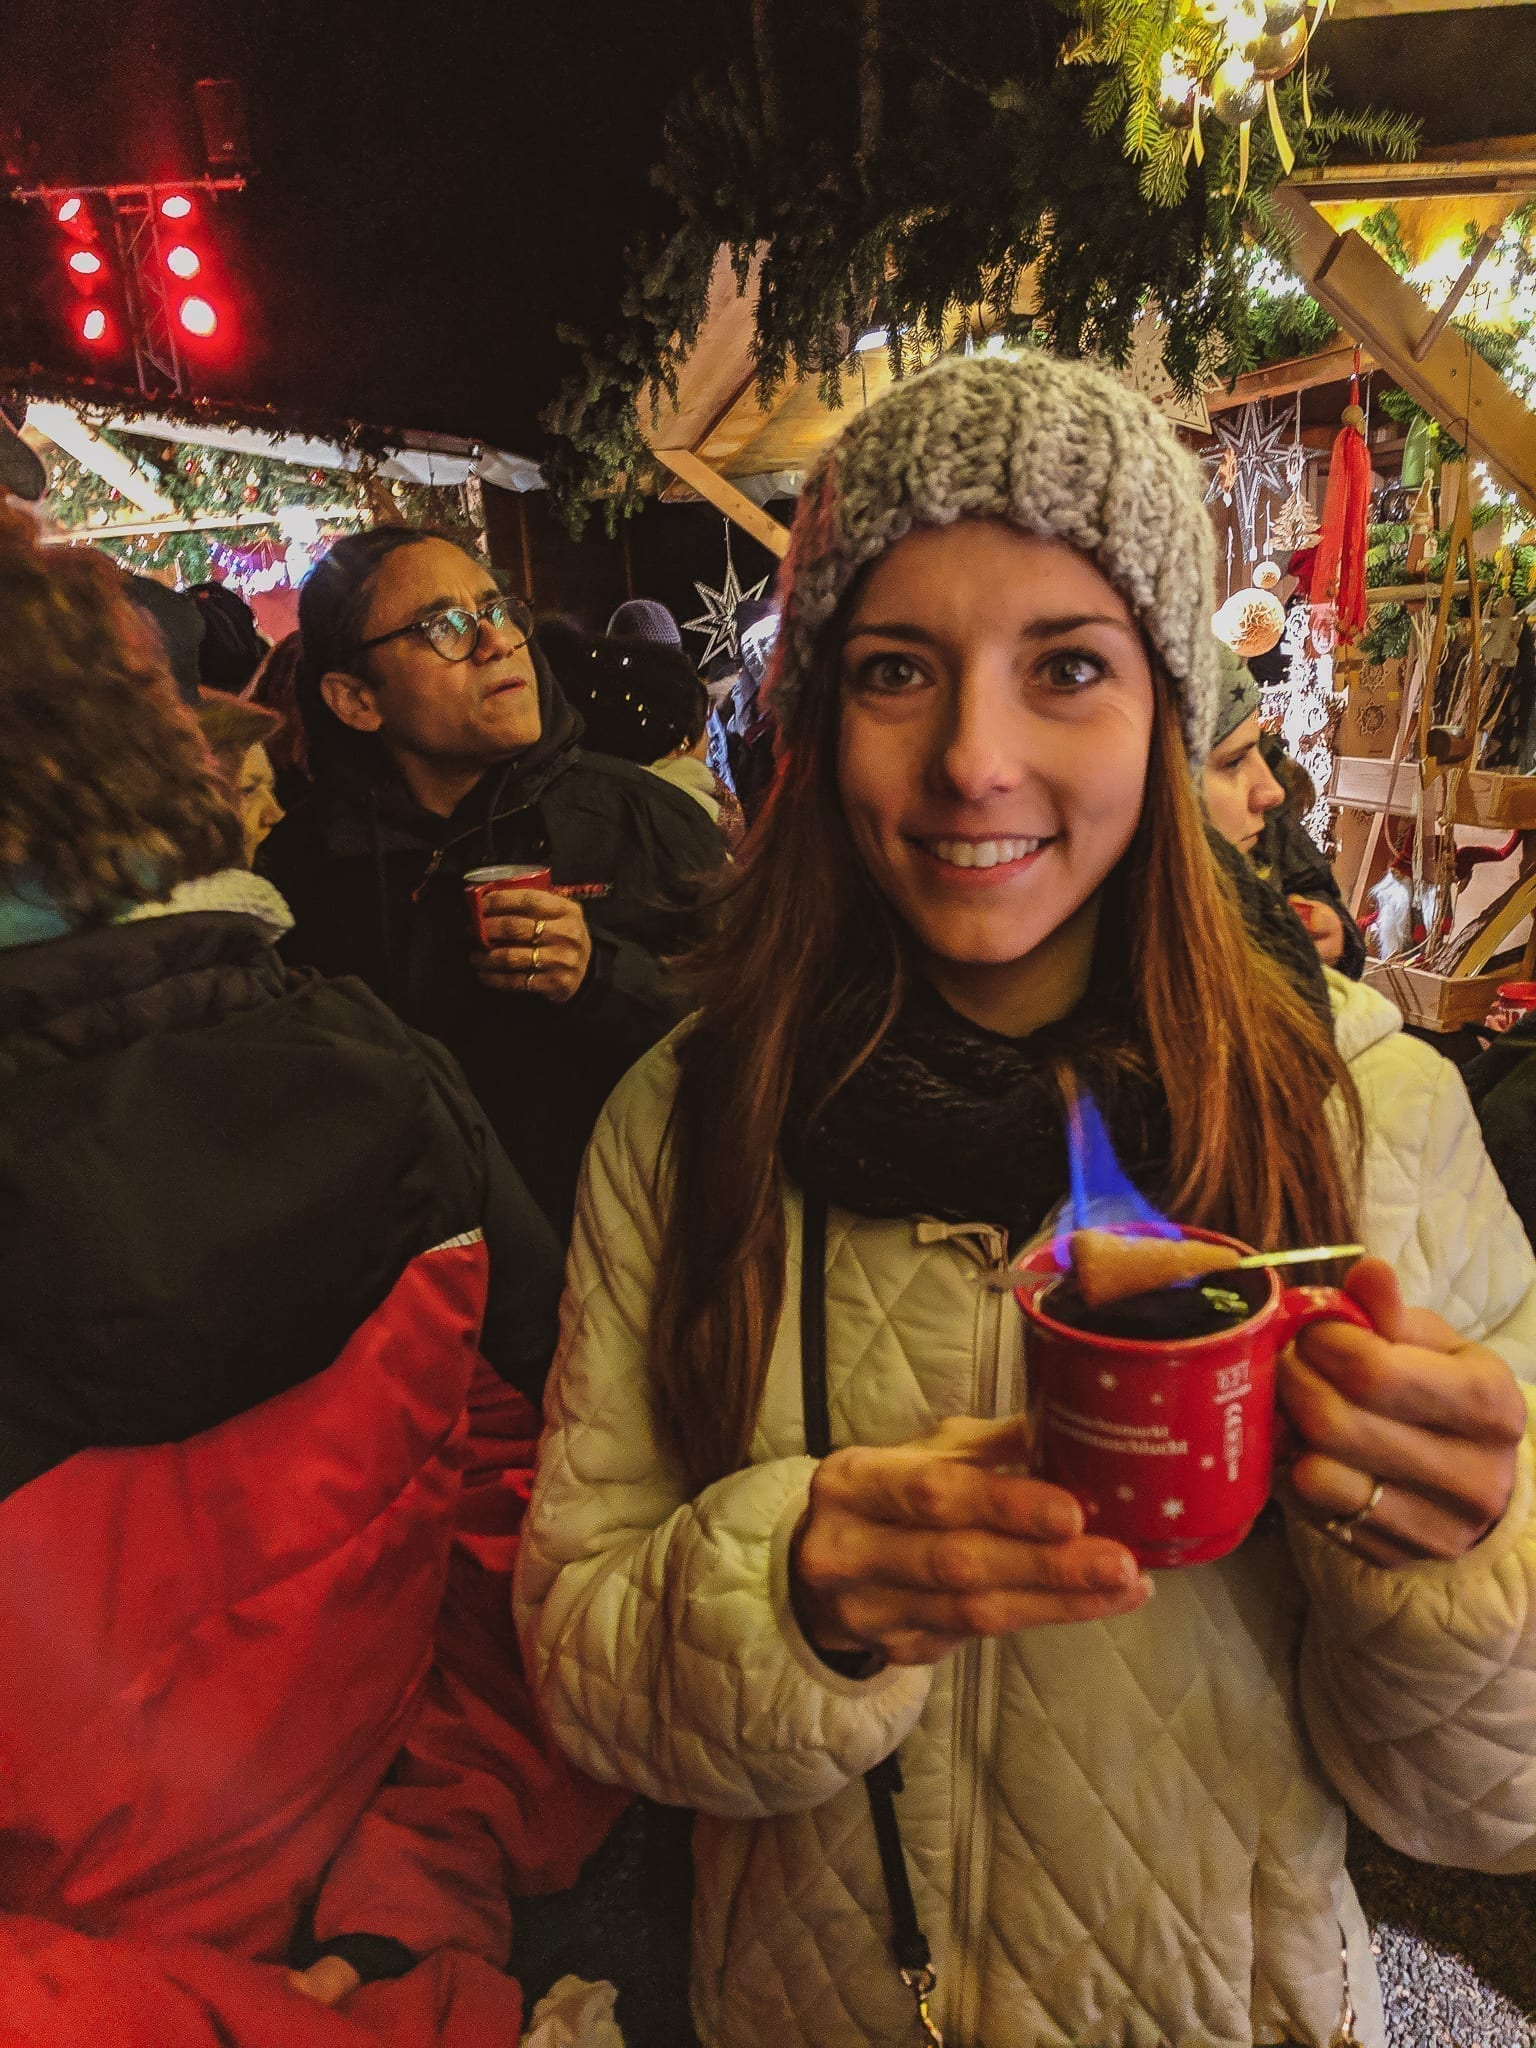 Feuerzangenbowle is a common German Christmas tradition and bought at the famed German Christmas Markets, here is a girl holding a red glass of the flaming Glühwein.